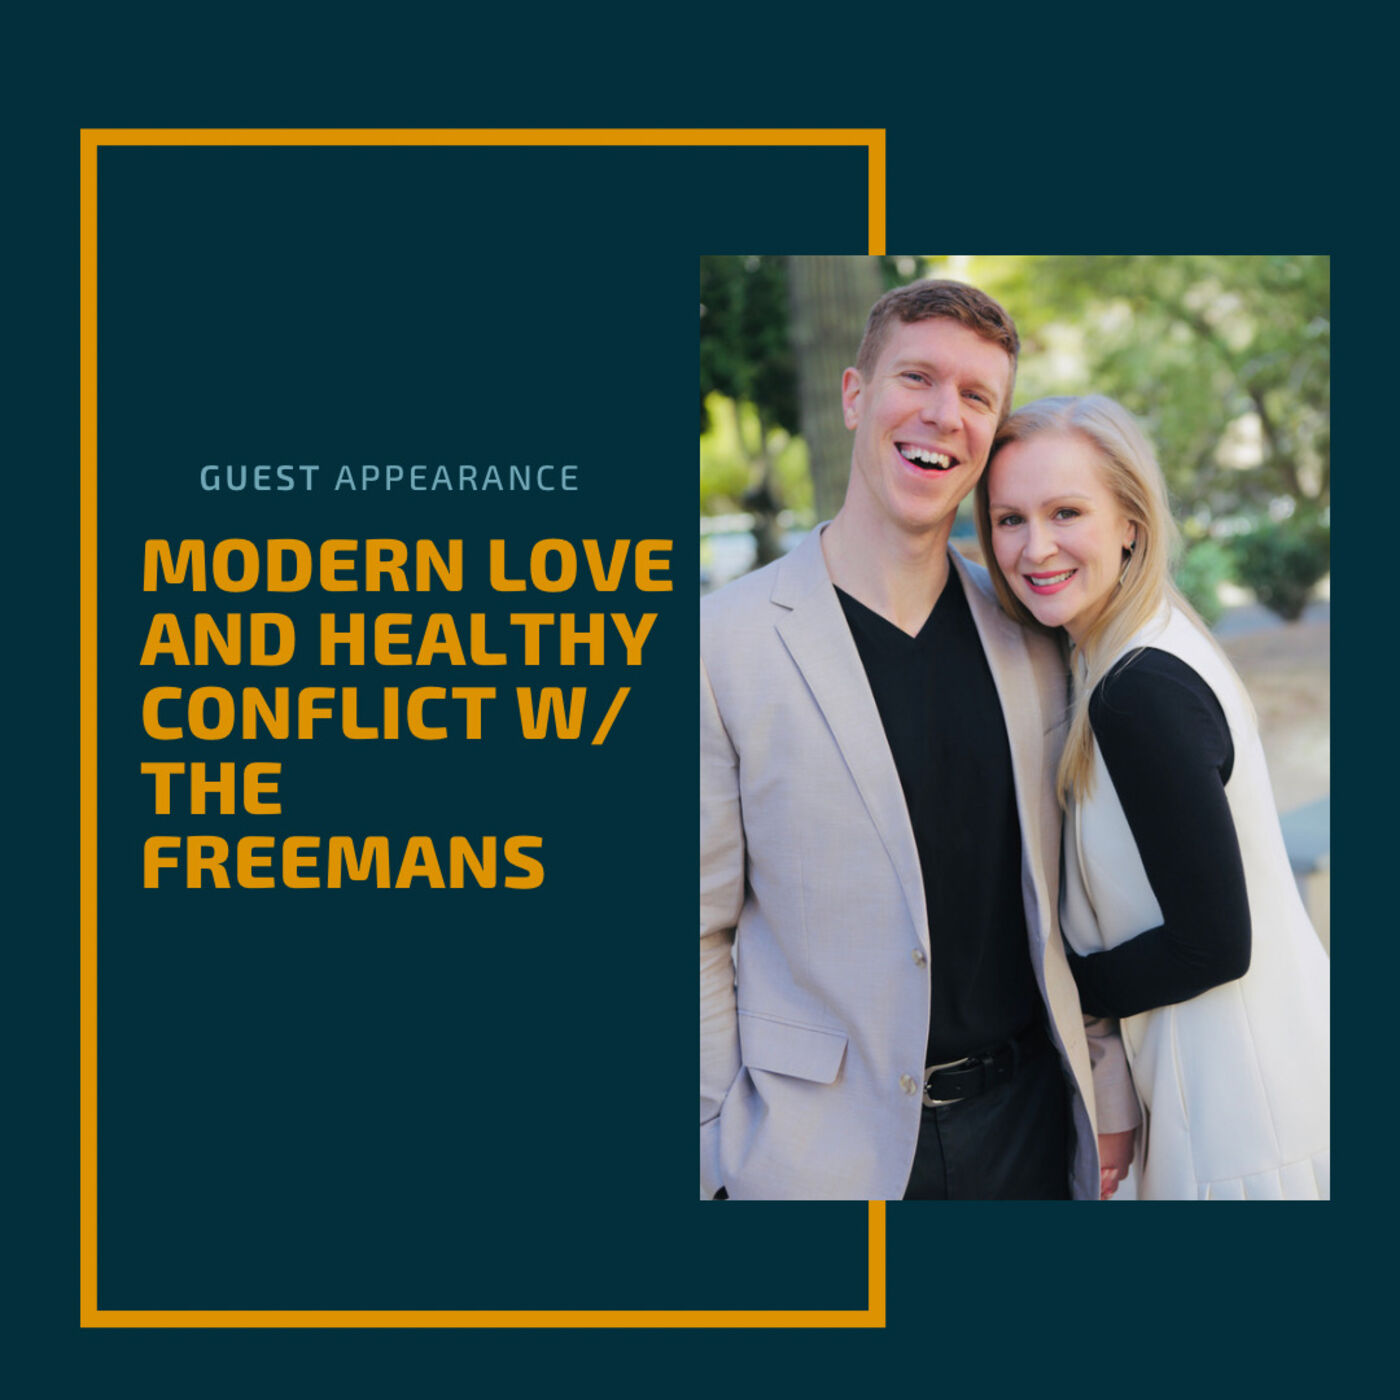 Modern Love and Healthy Conflict with The Freemans